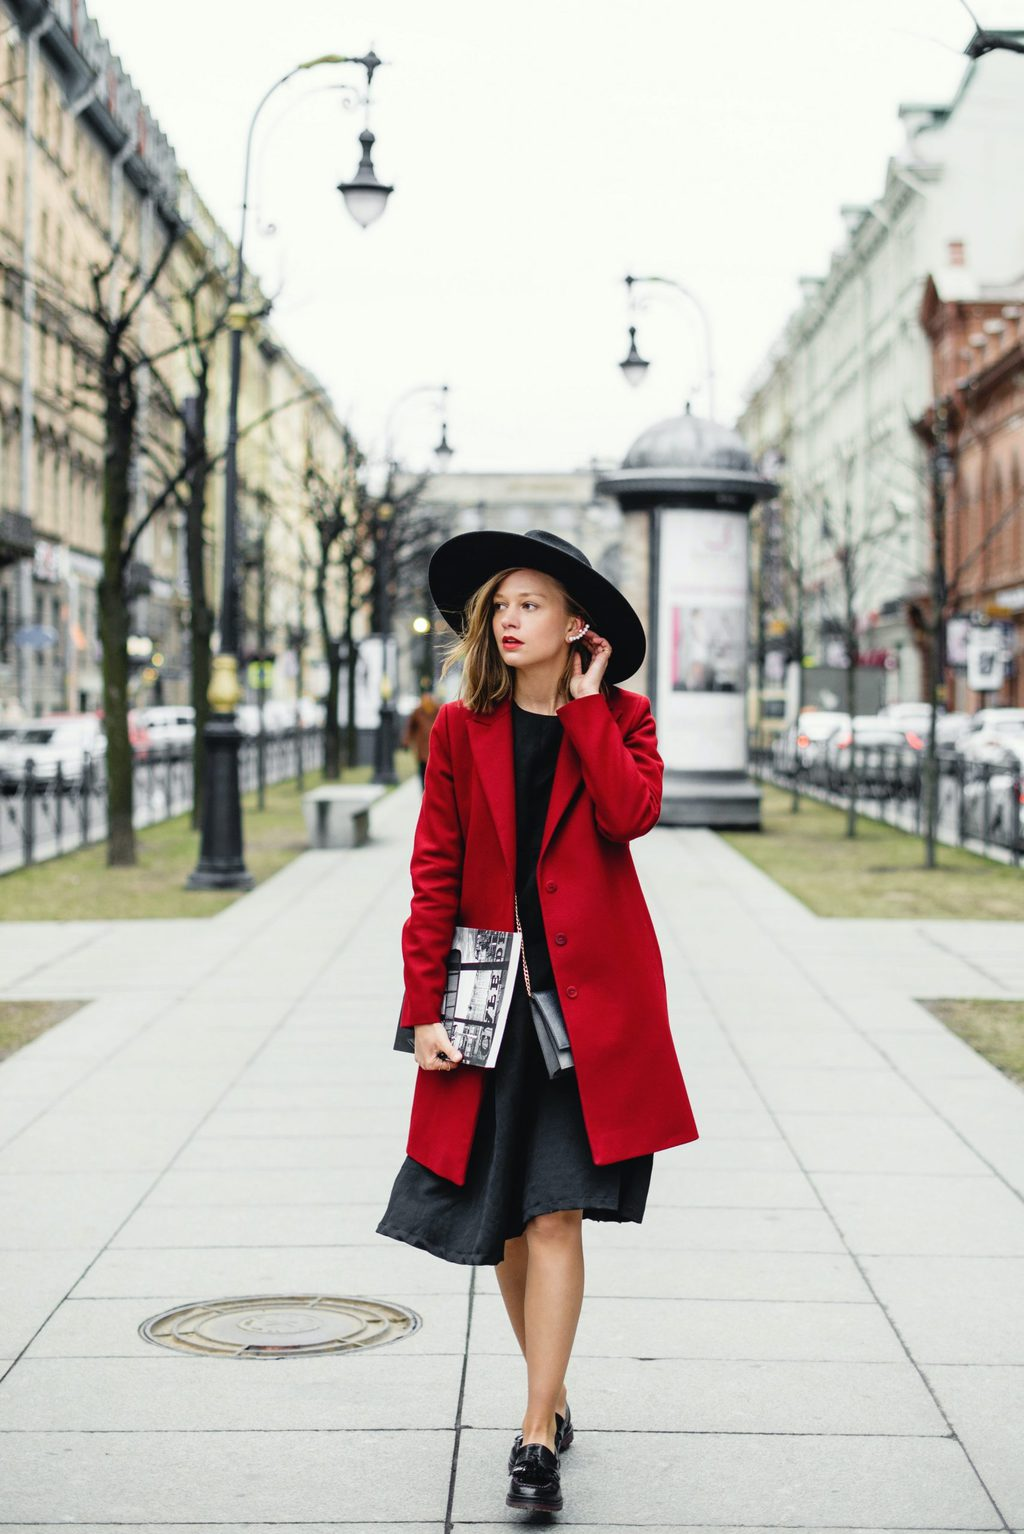 girl walking in all black outfit and red coat, holiday style tips